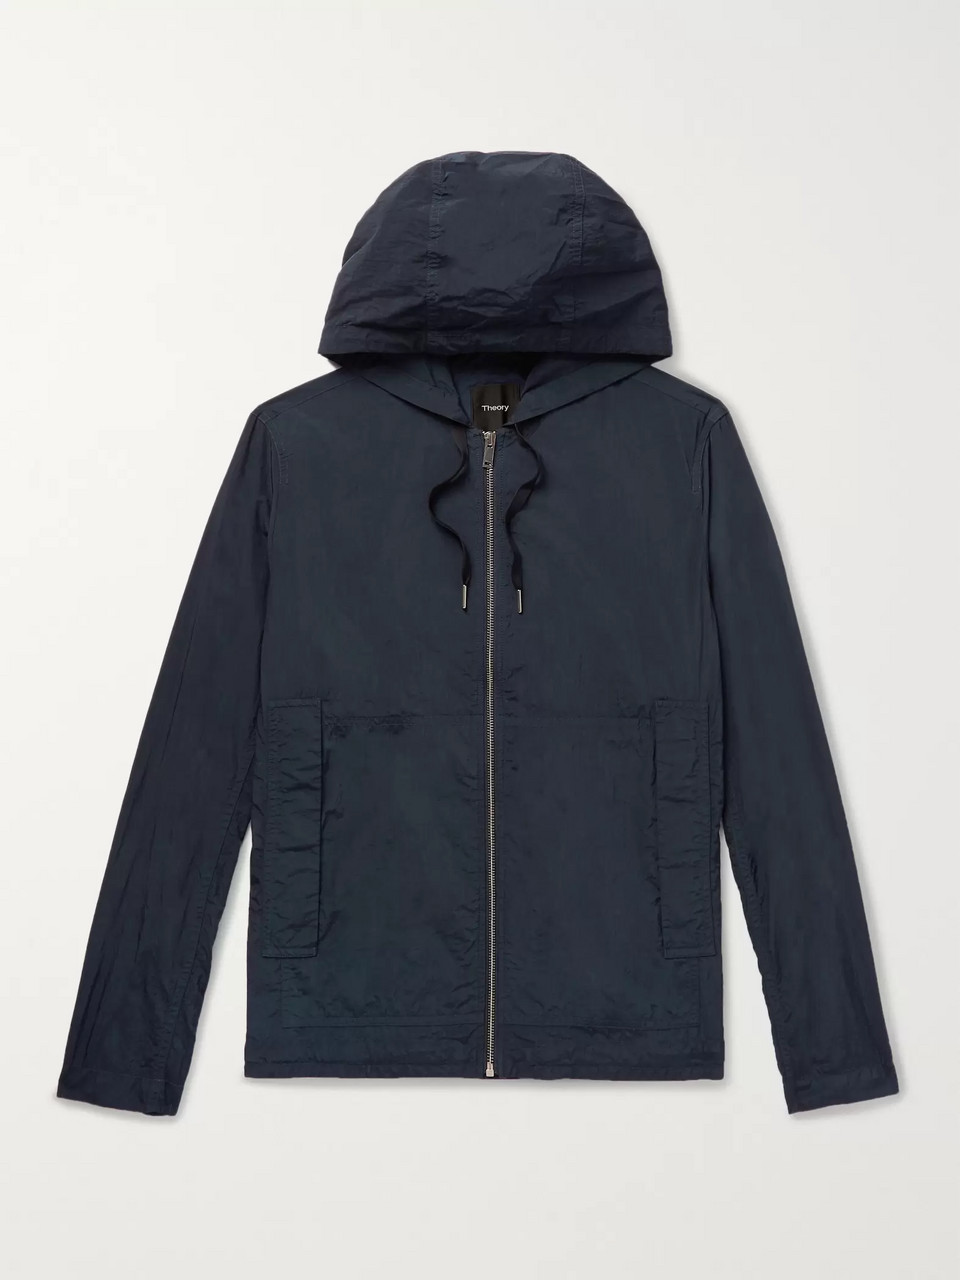 d52edd7d38ed3 Navy Ditmars Garment-Dyed Nylon Hooded Jacket | Theory | MR PORTER